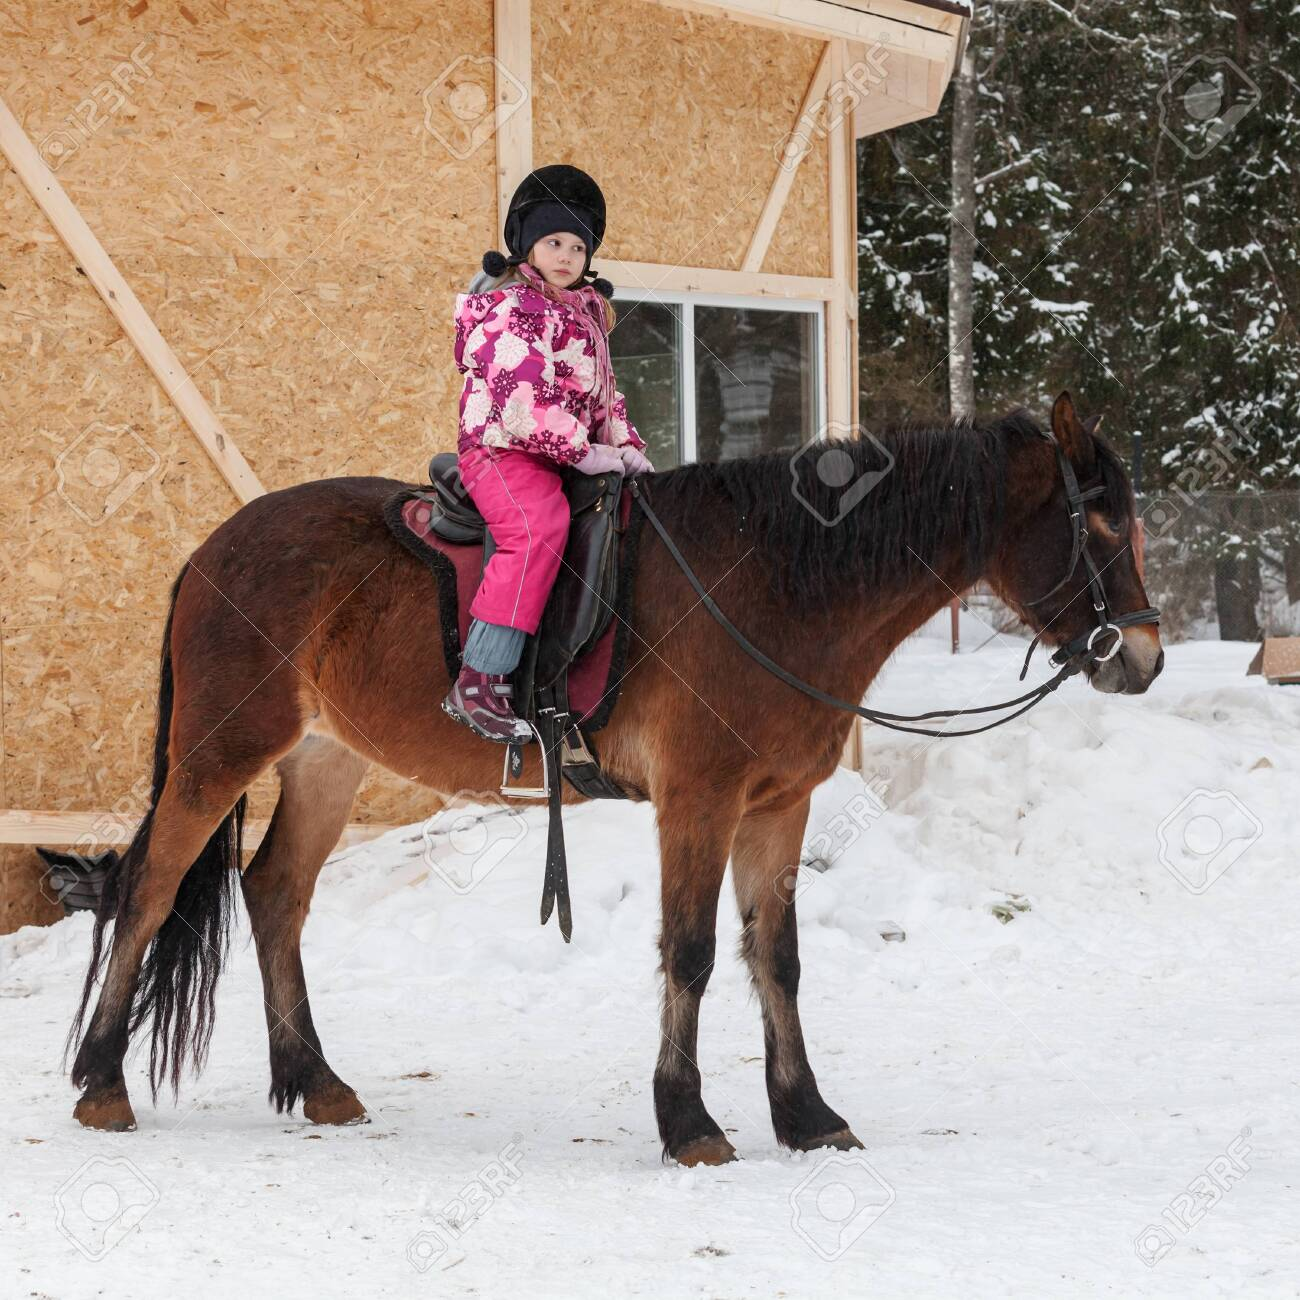 Beginner riding lessons, little girl with brown horse stand on snowy riding field - 120654843